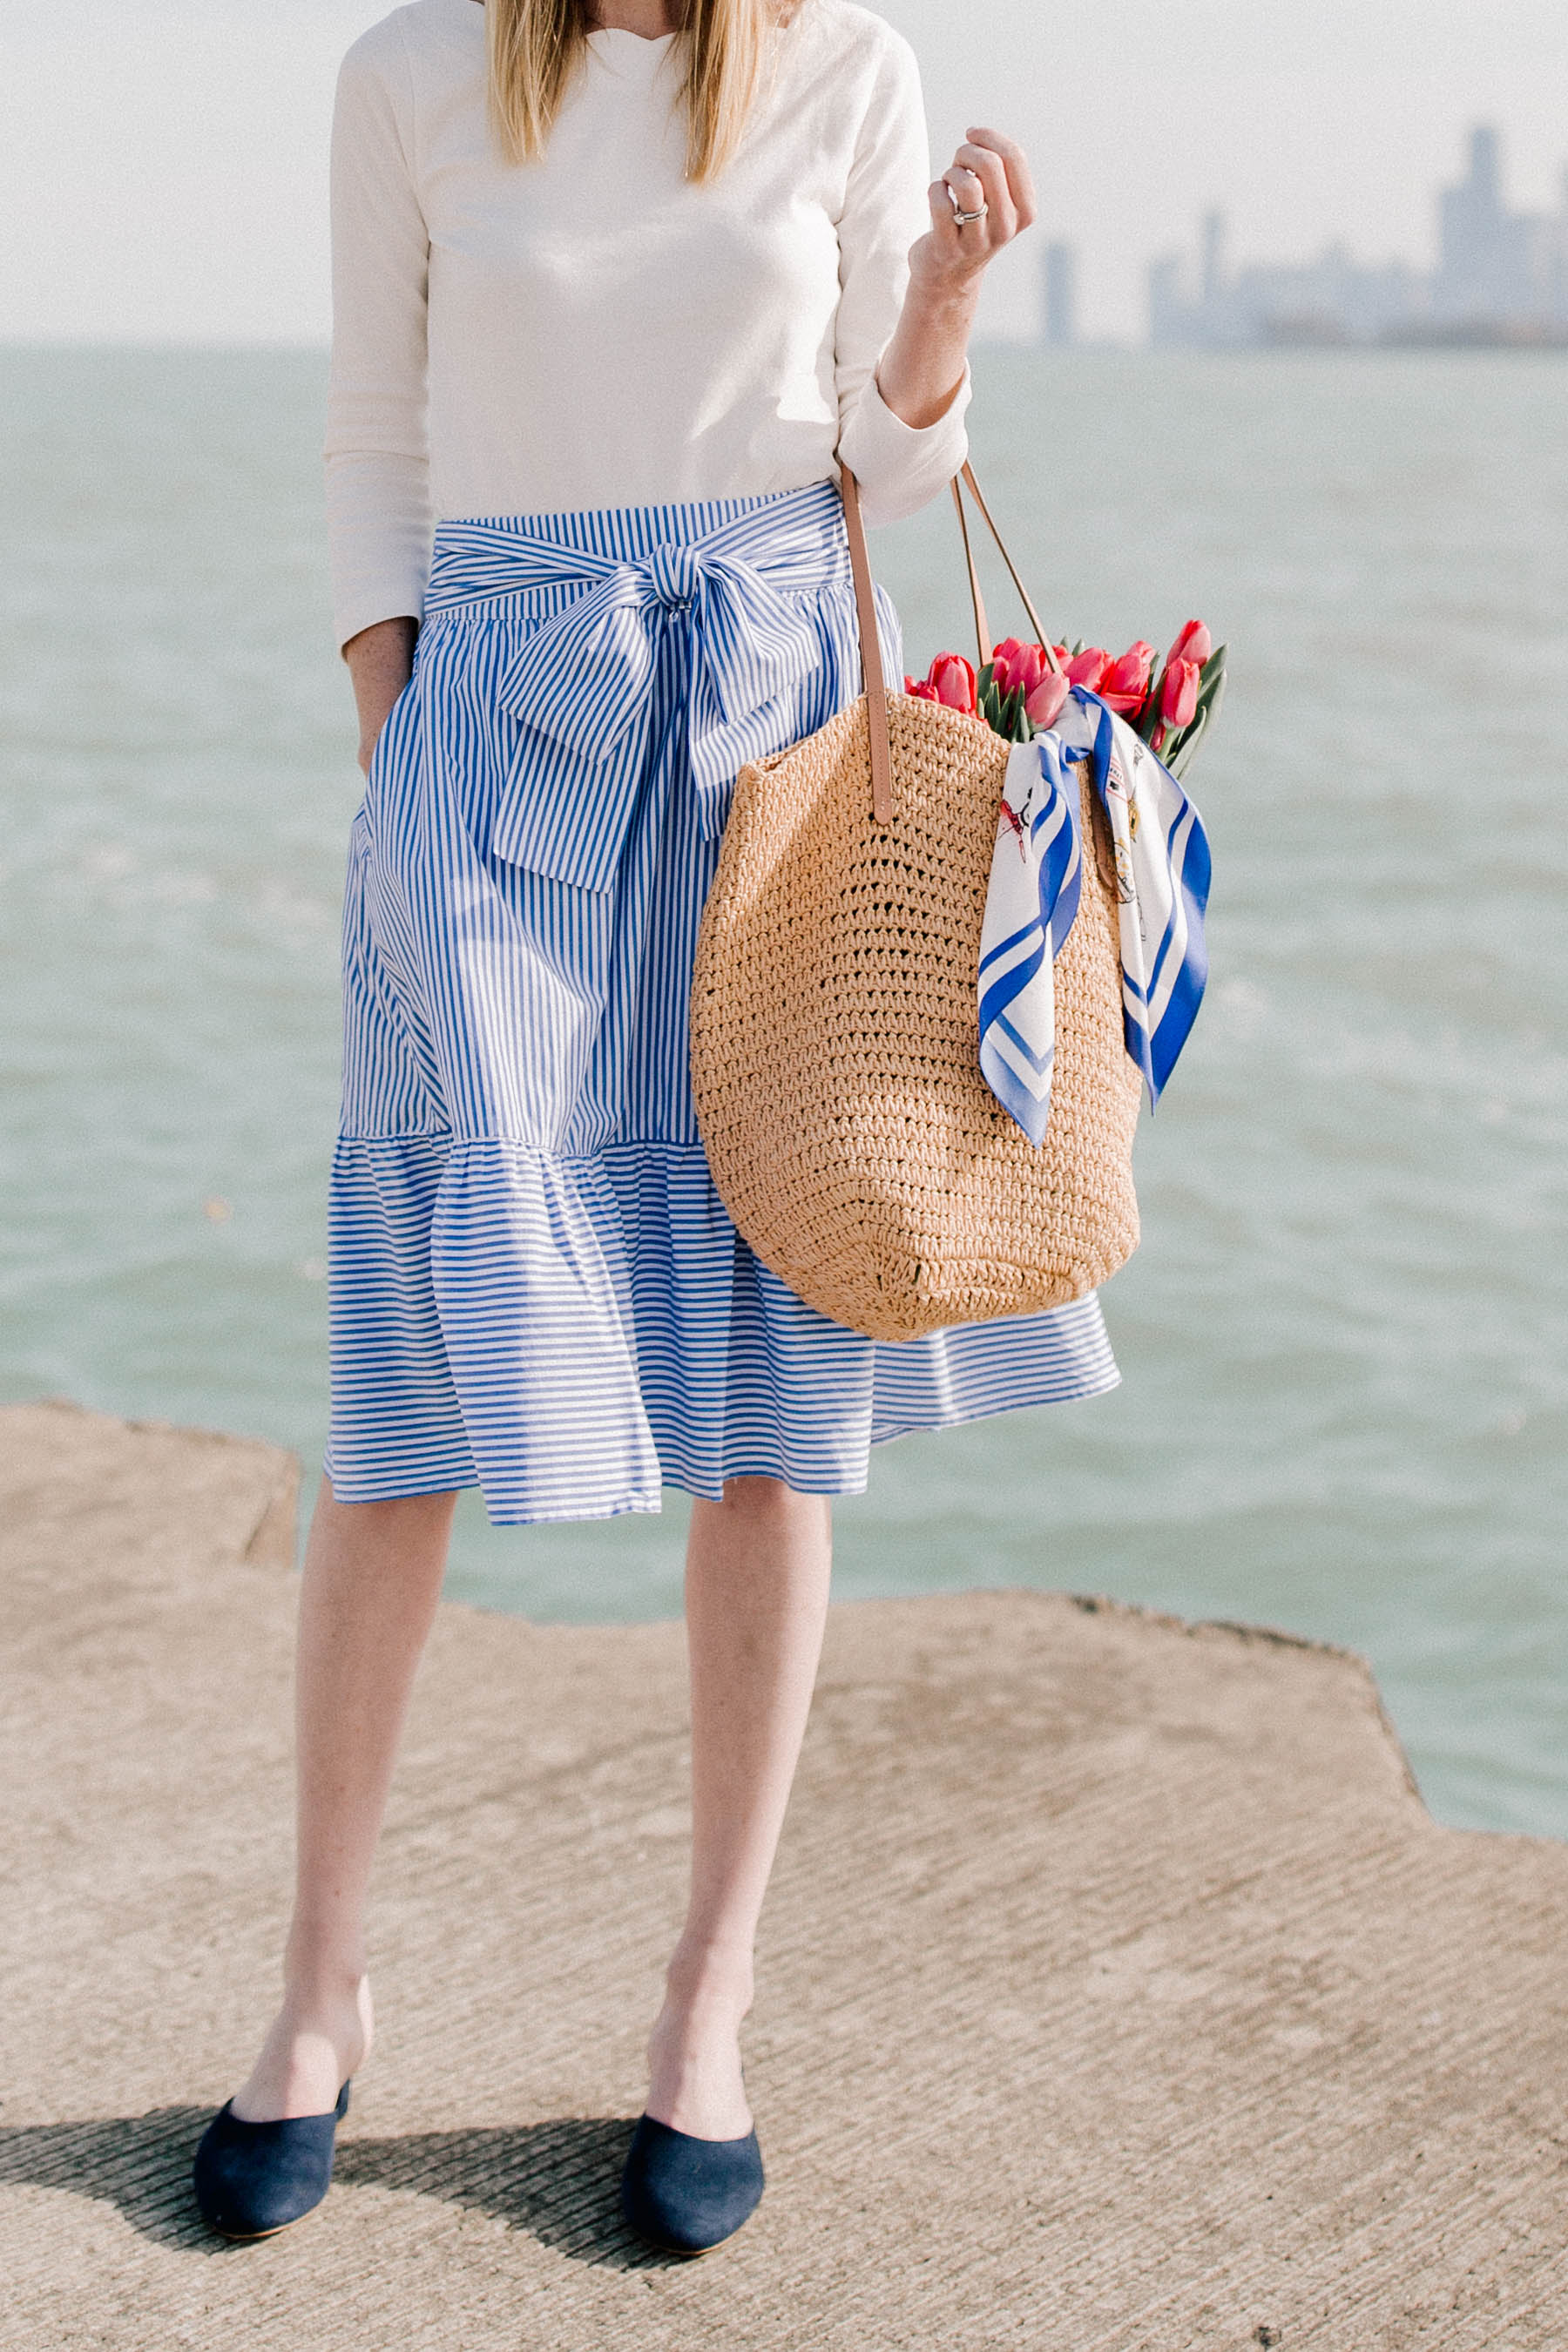 Kelly's look: J.Crew Factory Skirt /  Navy Mules / Newer Woven Tote / Scalloped Top